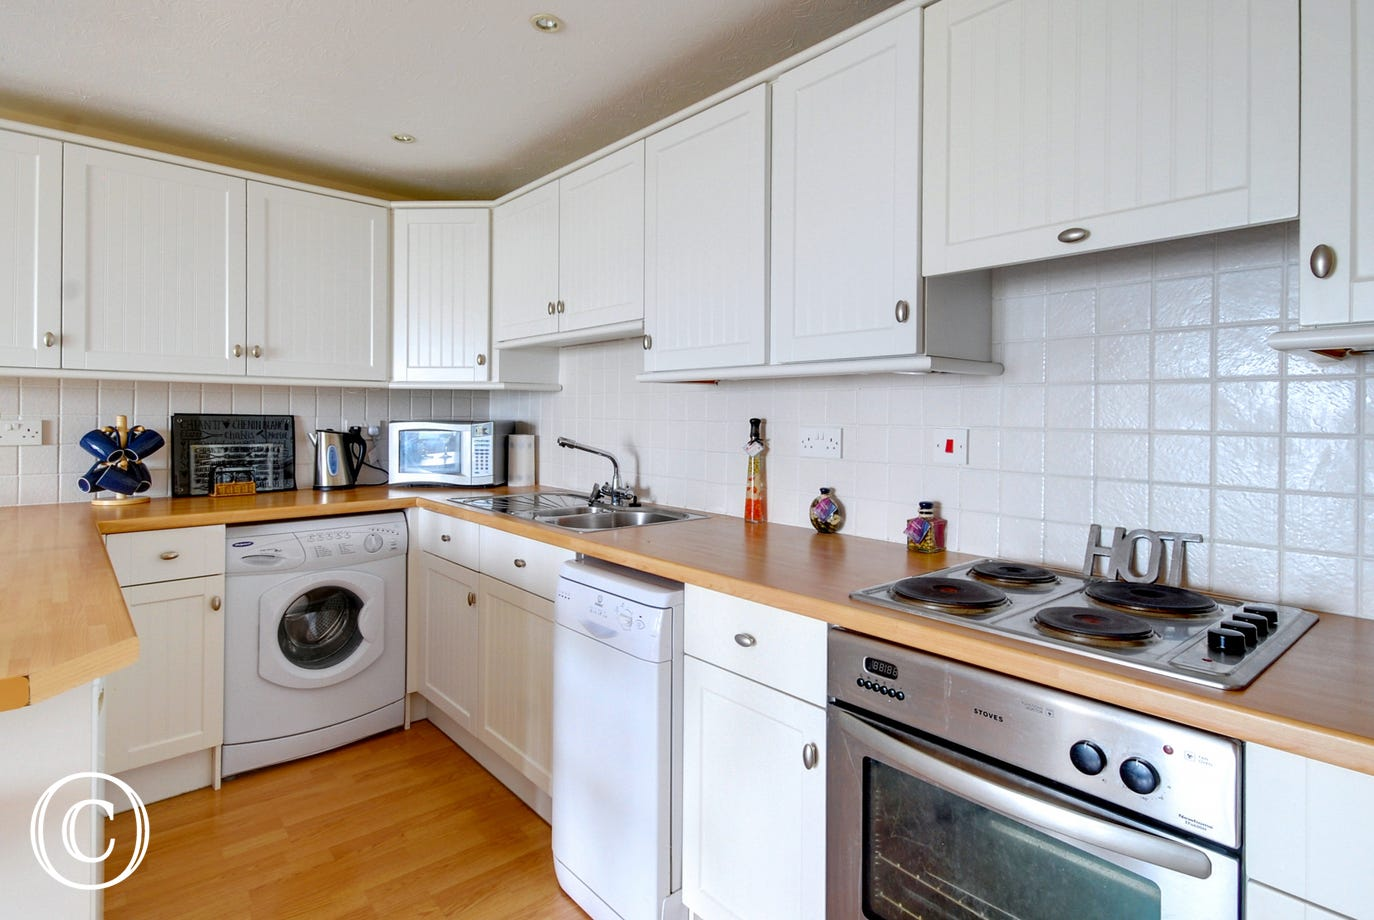 The kitchen has white units and useful breakfast bar